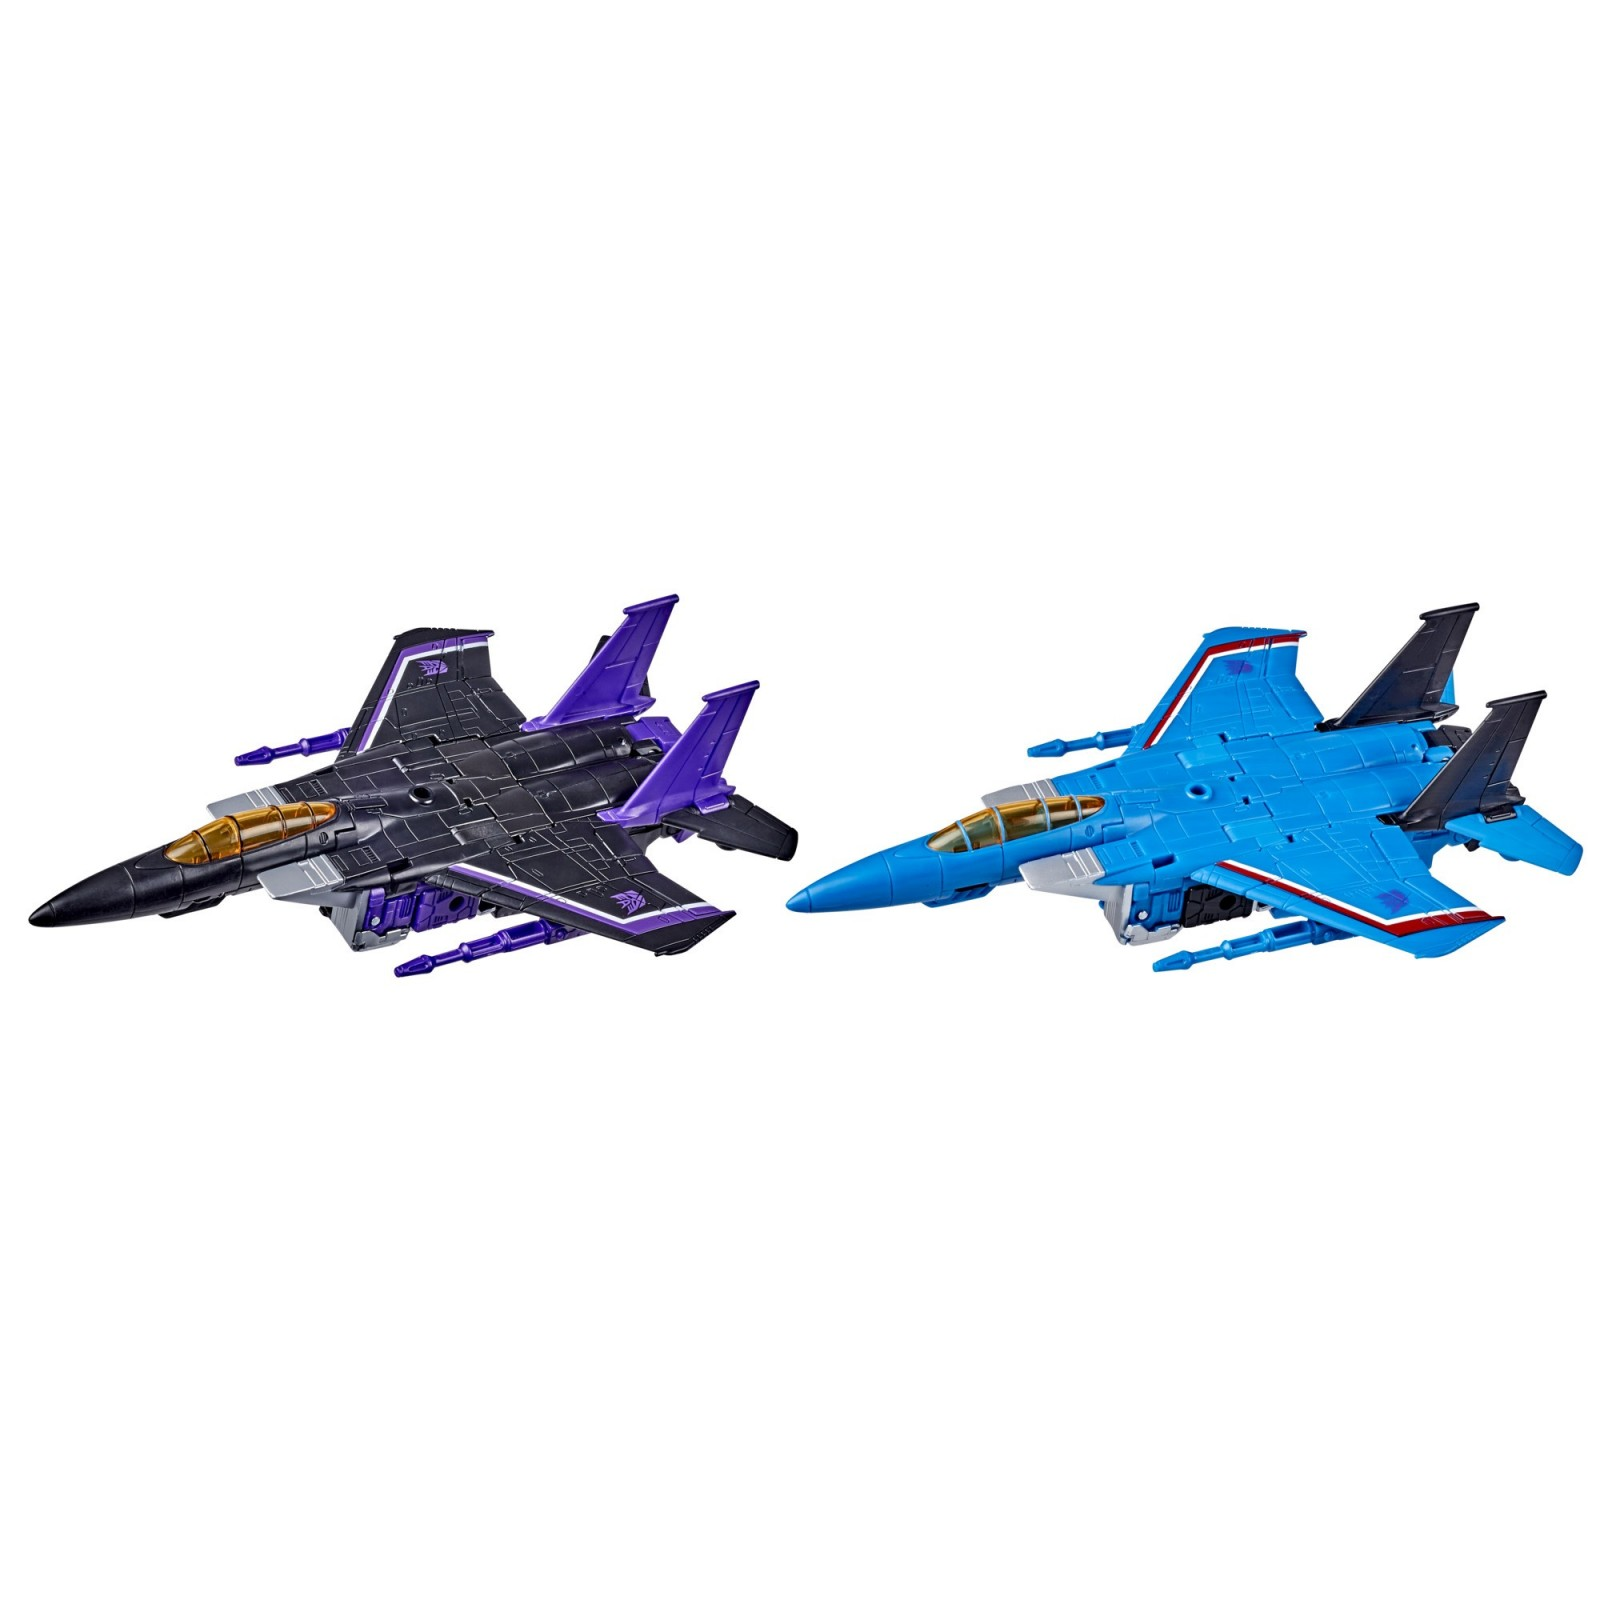 Transformers News: Transformers War for Cybertron: Earthrise Seeker 2 Pack and Decepticon Clone 2 Pack Revealed